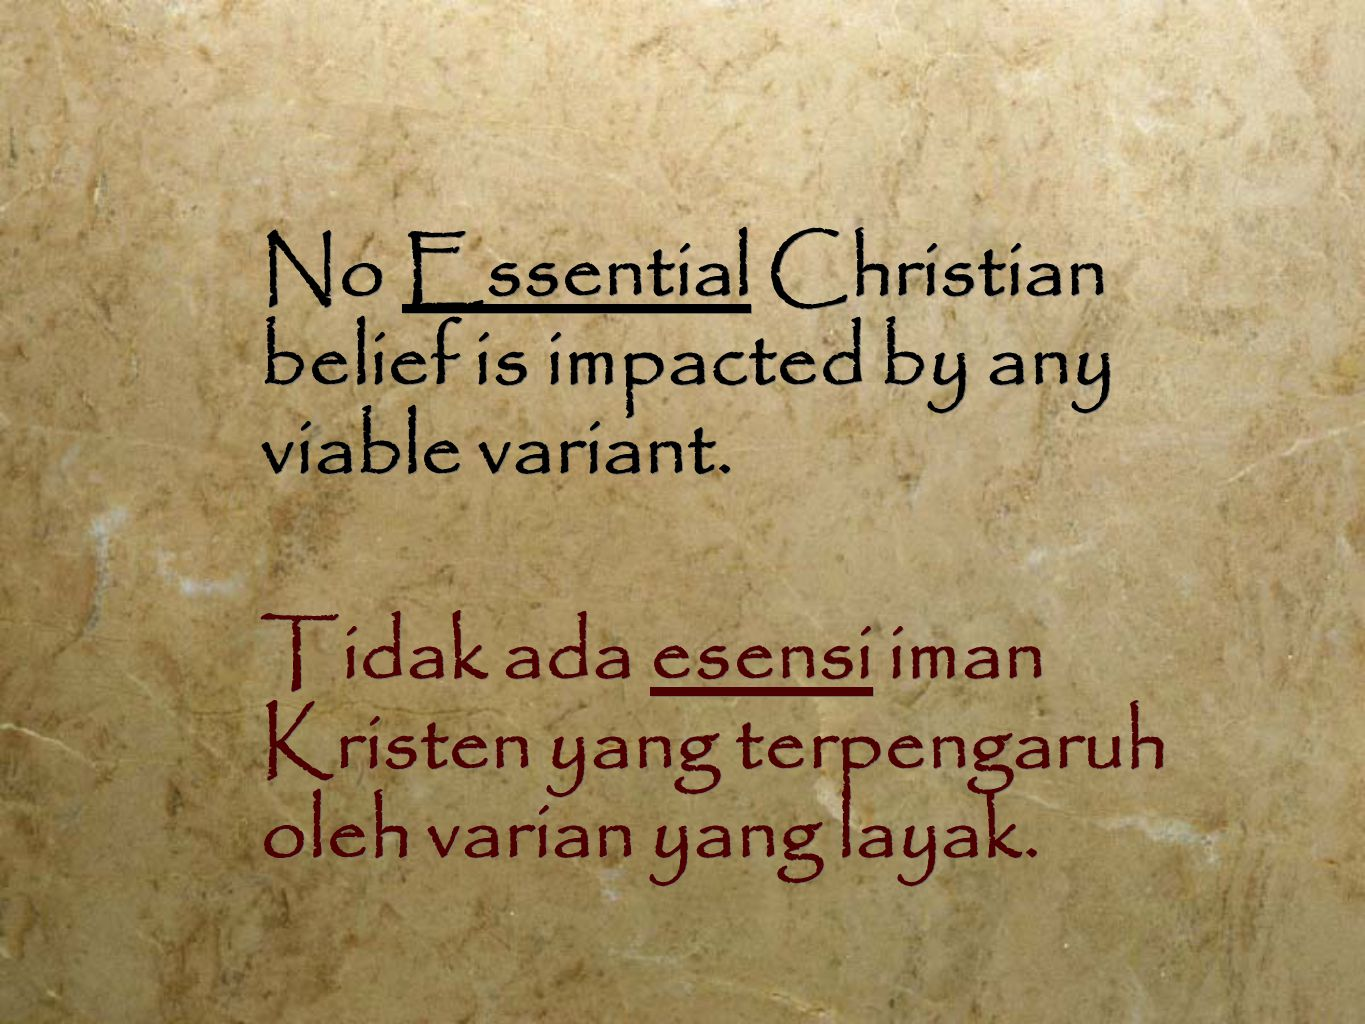 No Essential Christian belief is impacted by any viable variant.